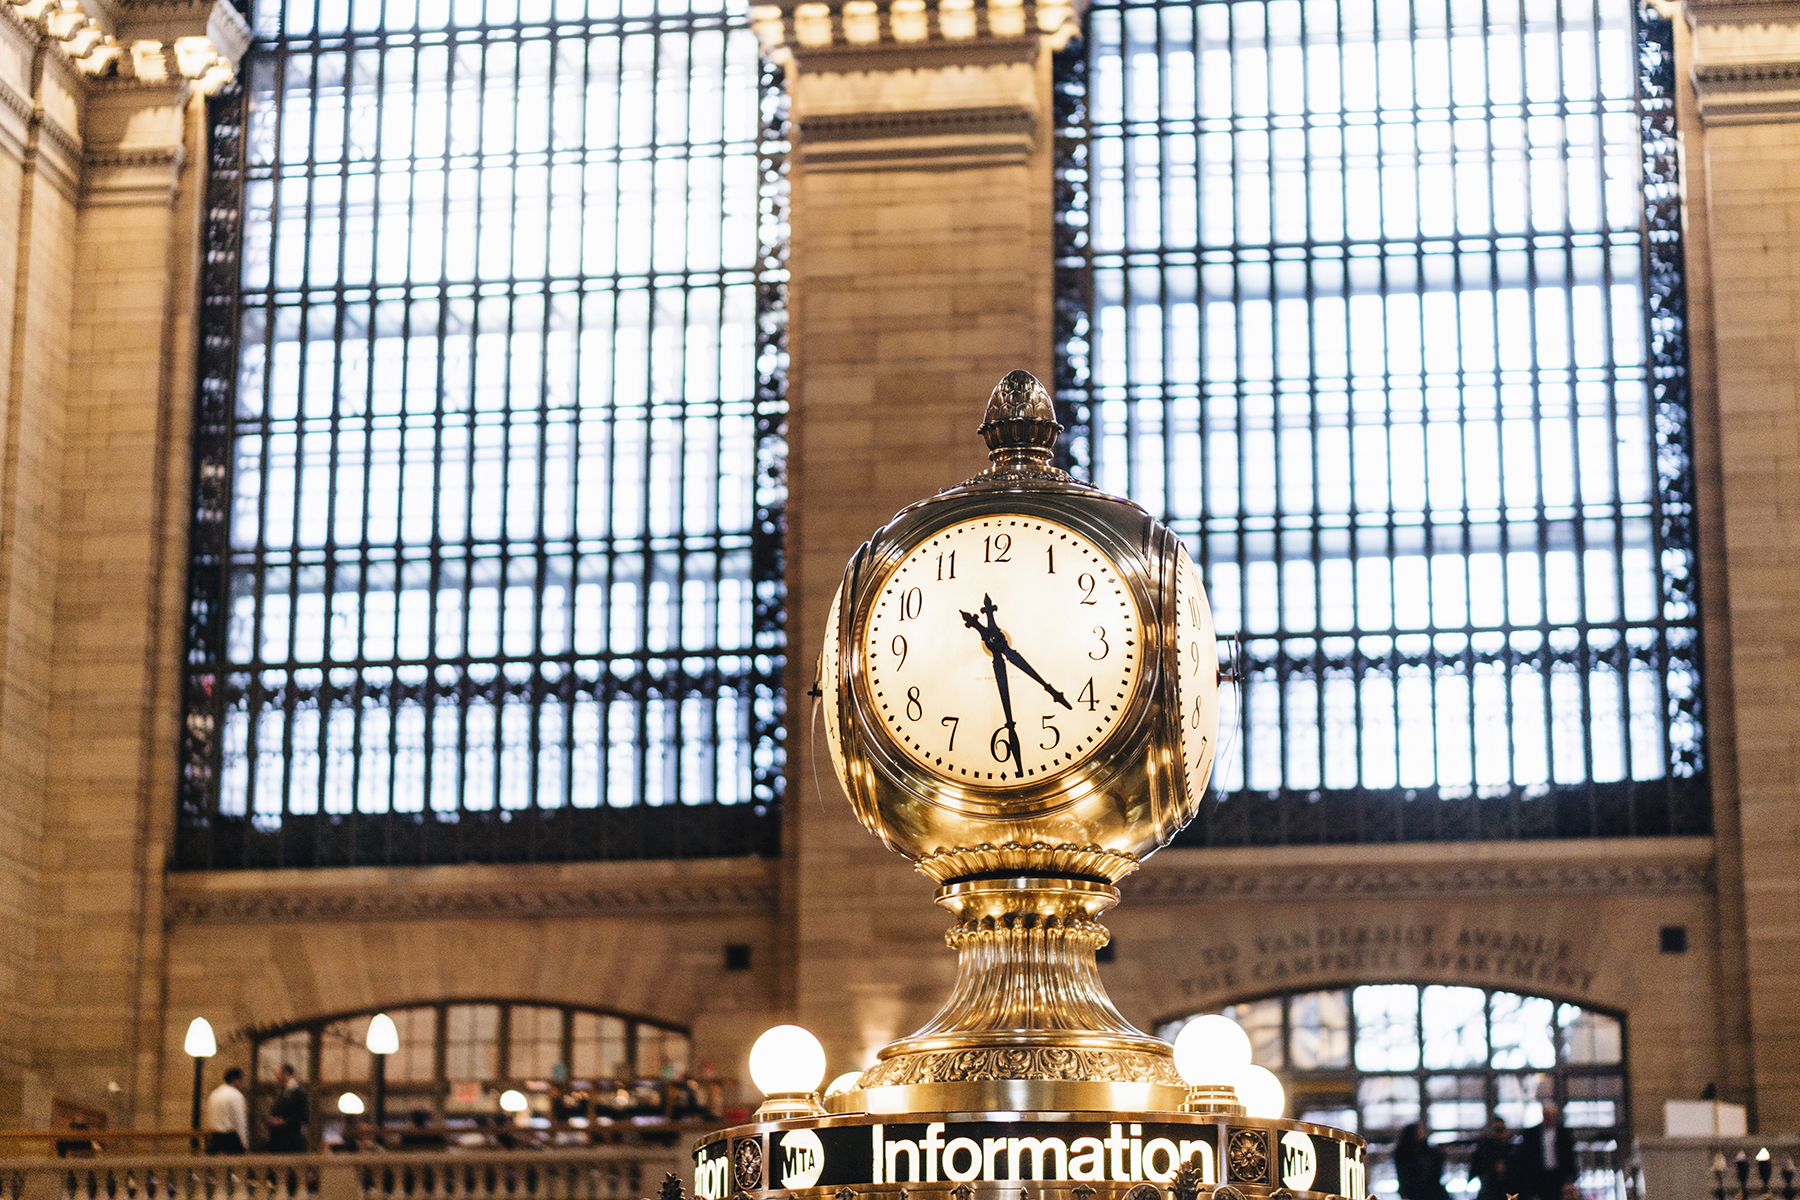 Grand Central station clock - Top 10 things to do in NYC with young kids | New York City travel guide